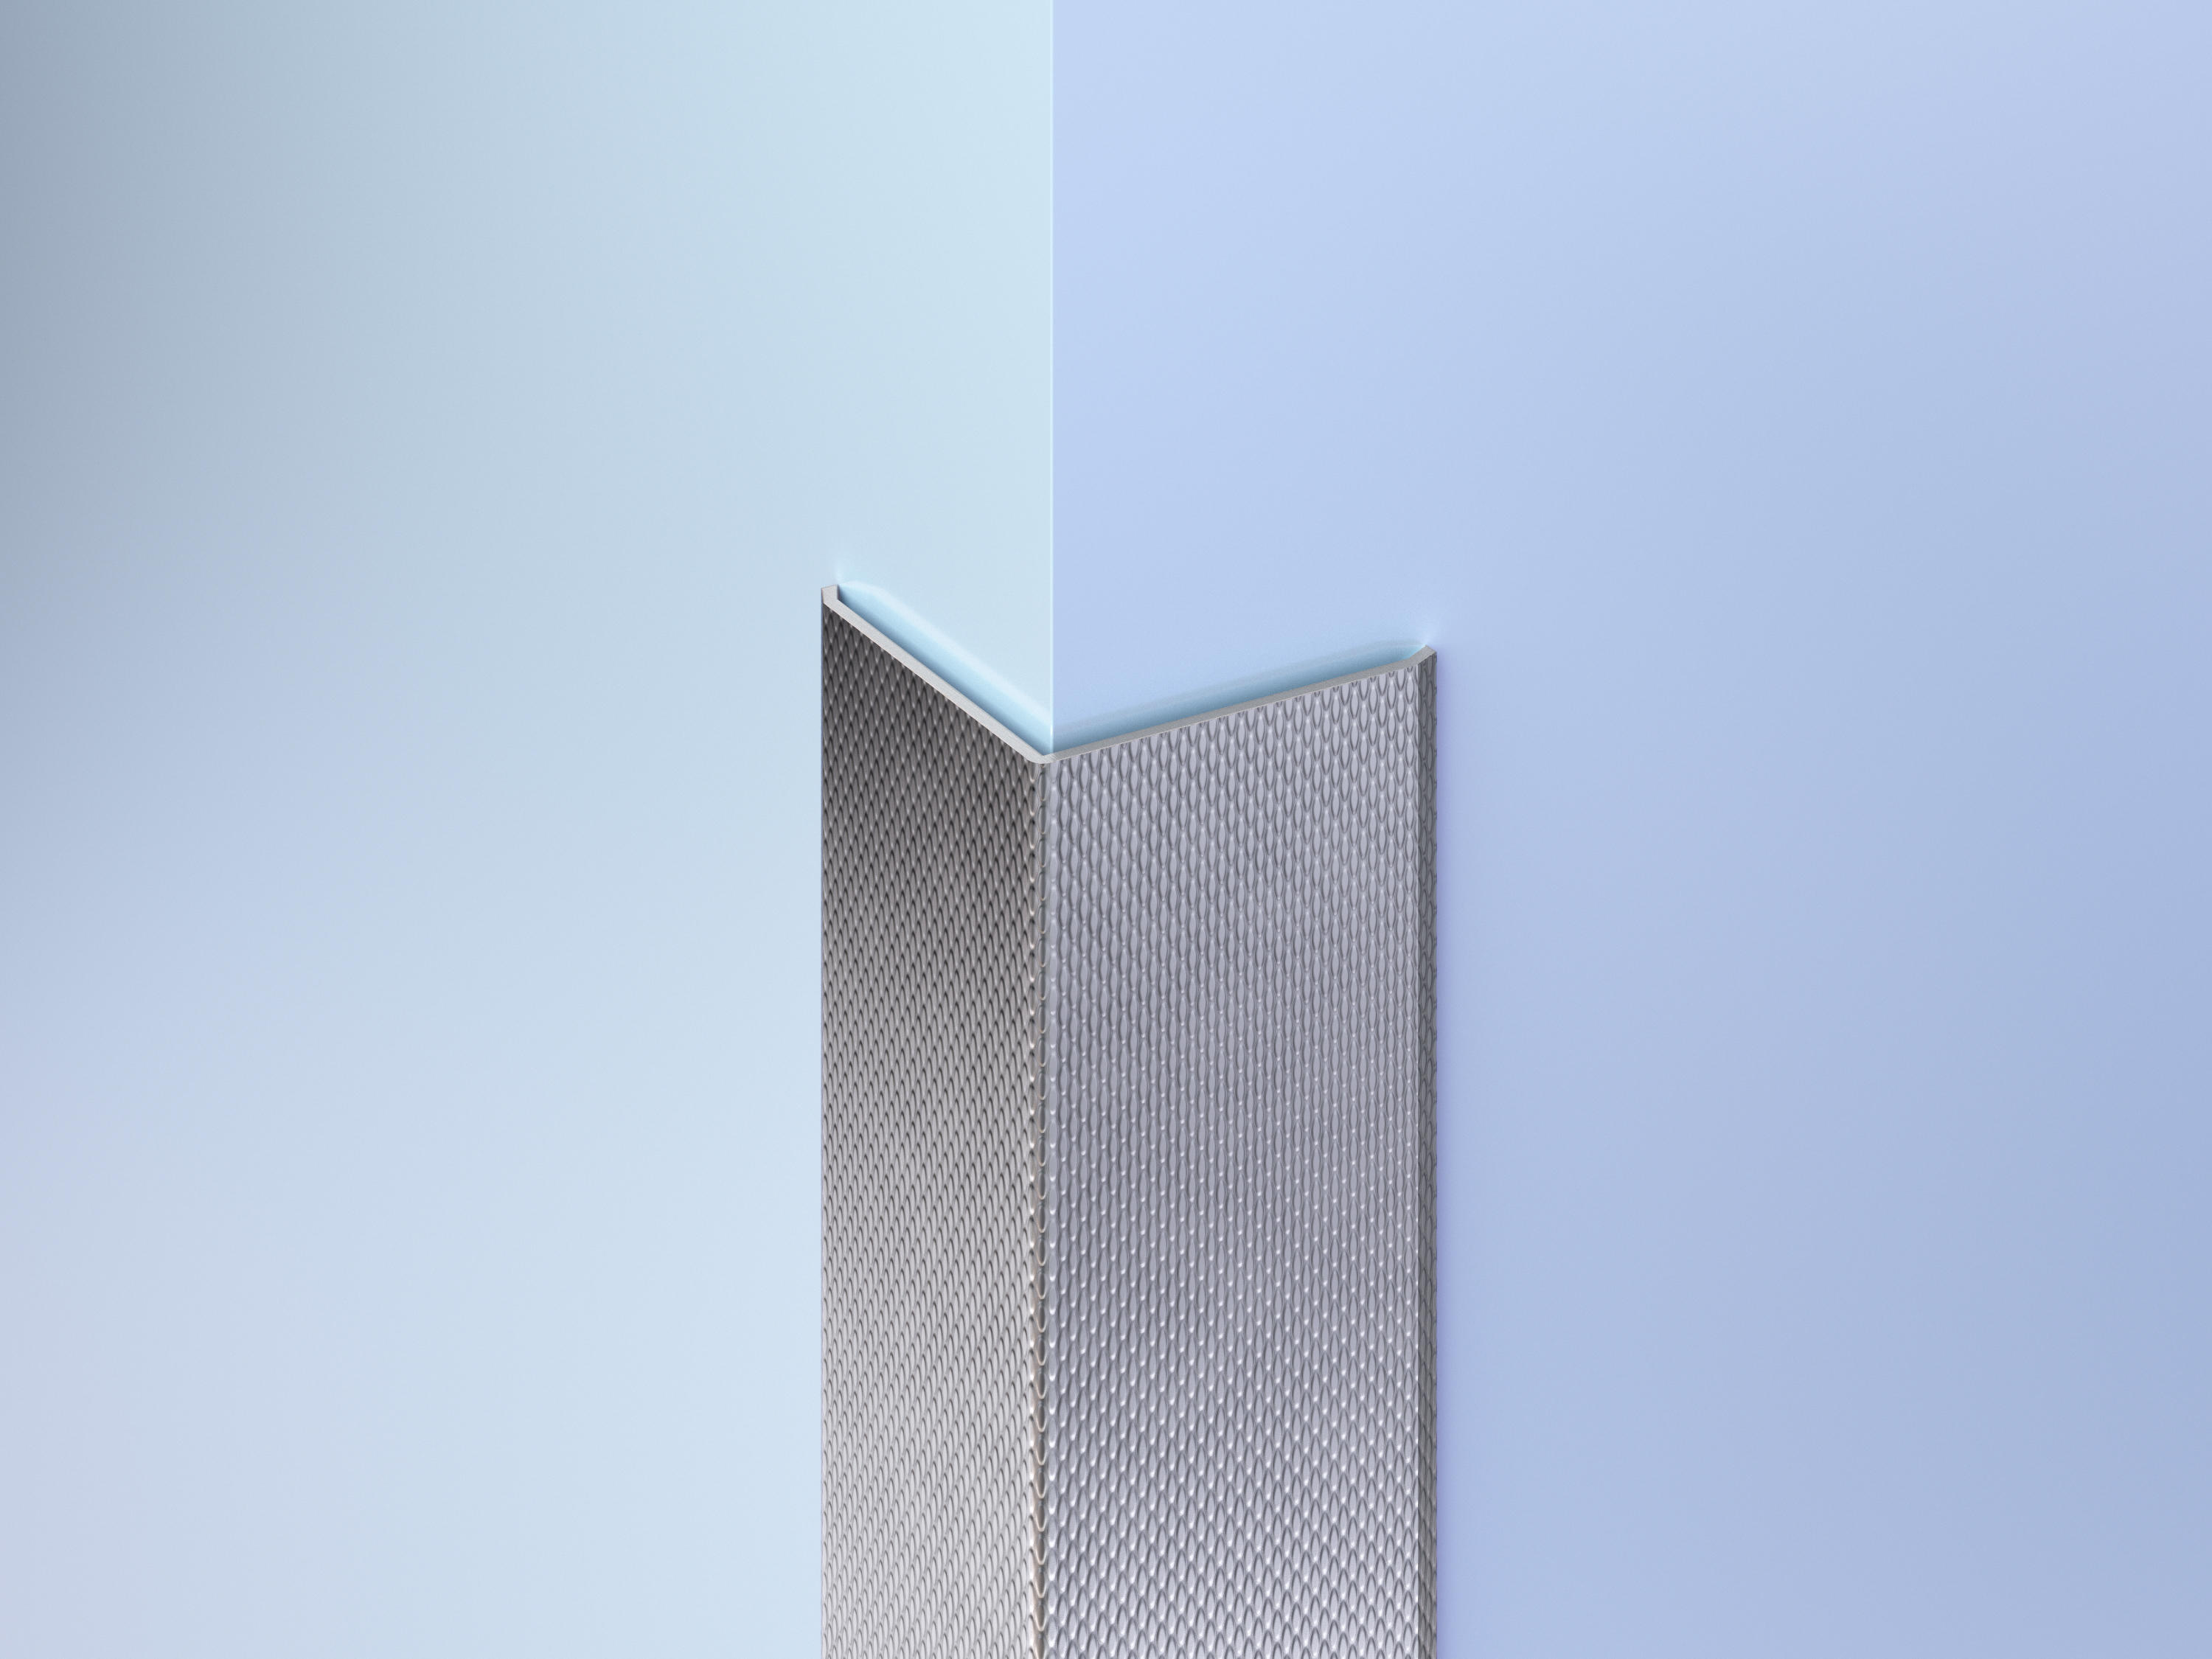 Patterned Stainless Steel Corner Guards